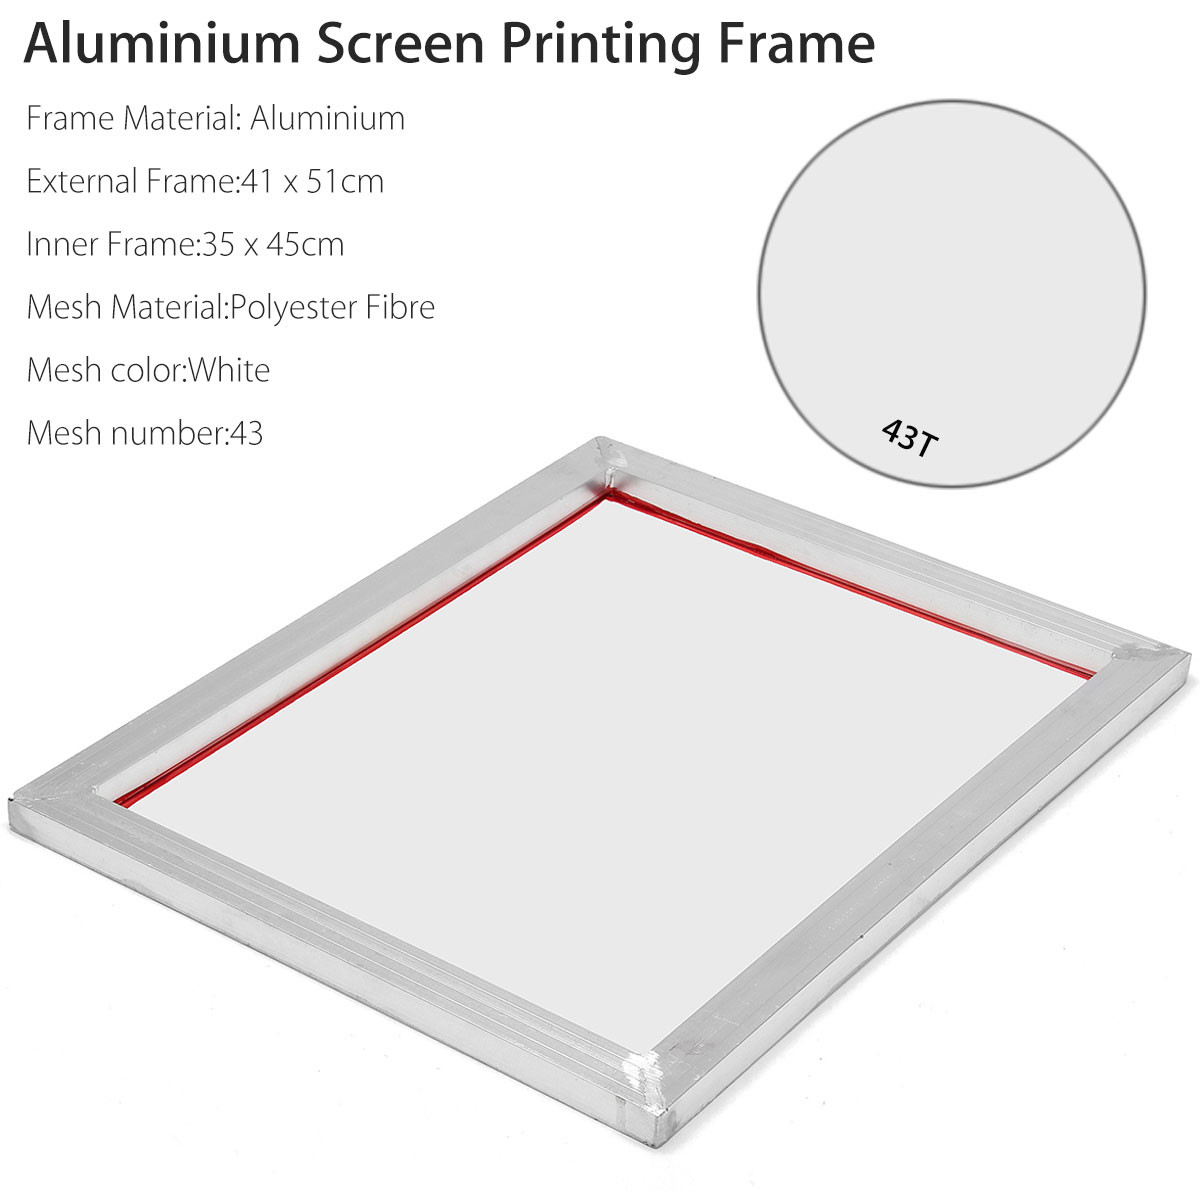 41 X 51cm A3 Screen Printing Aluminium Frame Stretched With 43T Silk Print Mesh For Printed Circuit Boards